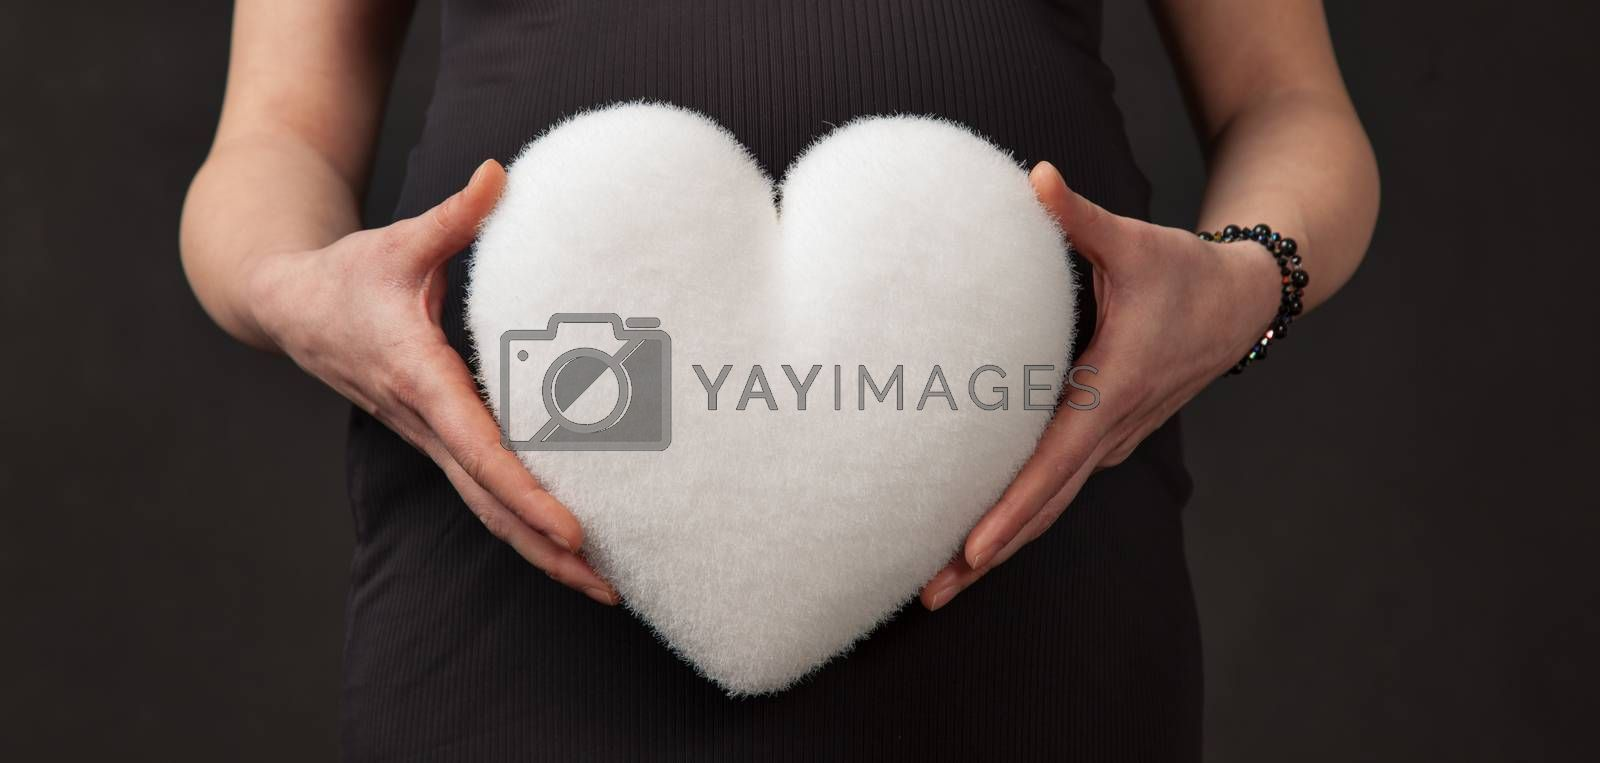 Hands of pregnant woman hold a white heart in front of her abdomen.